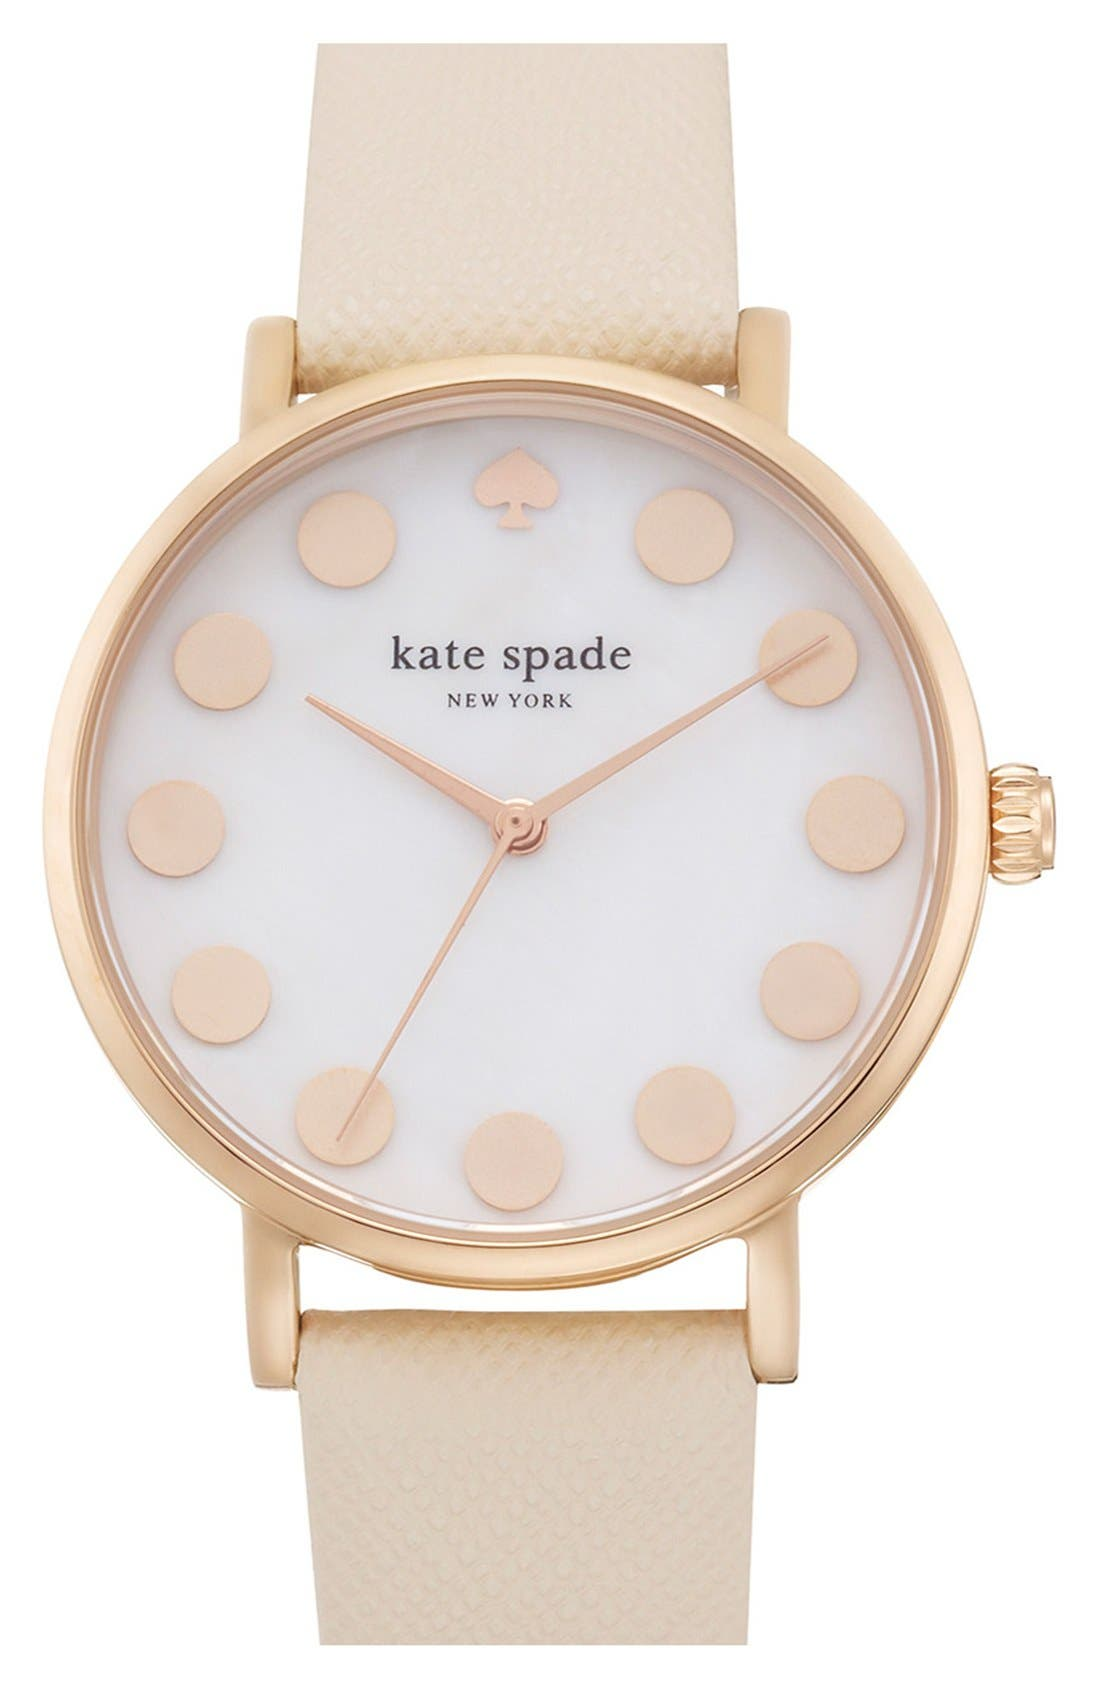 Main Image - kate spade new york 'metro' boxed dot dial watch & straps set, 34mm (Nordstrom Exclusive)